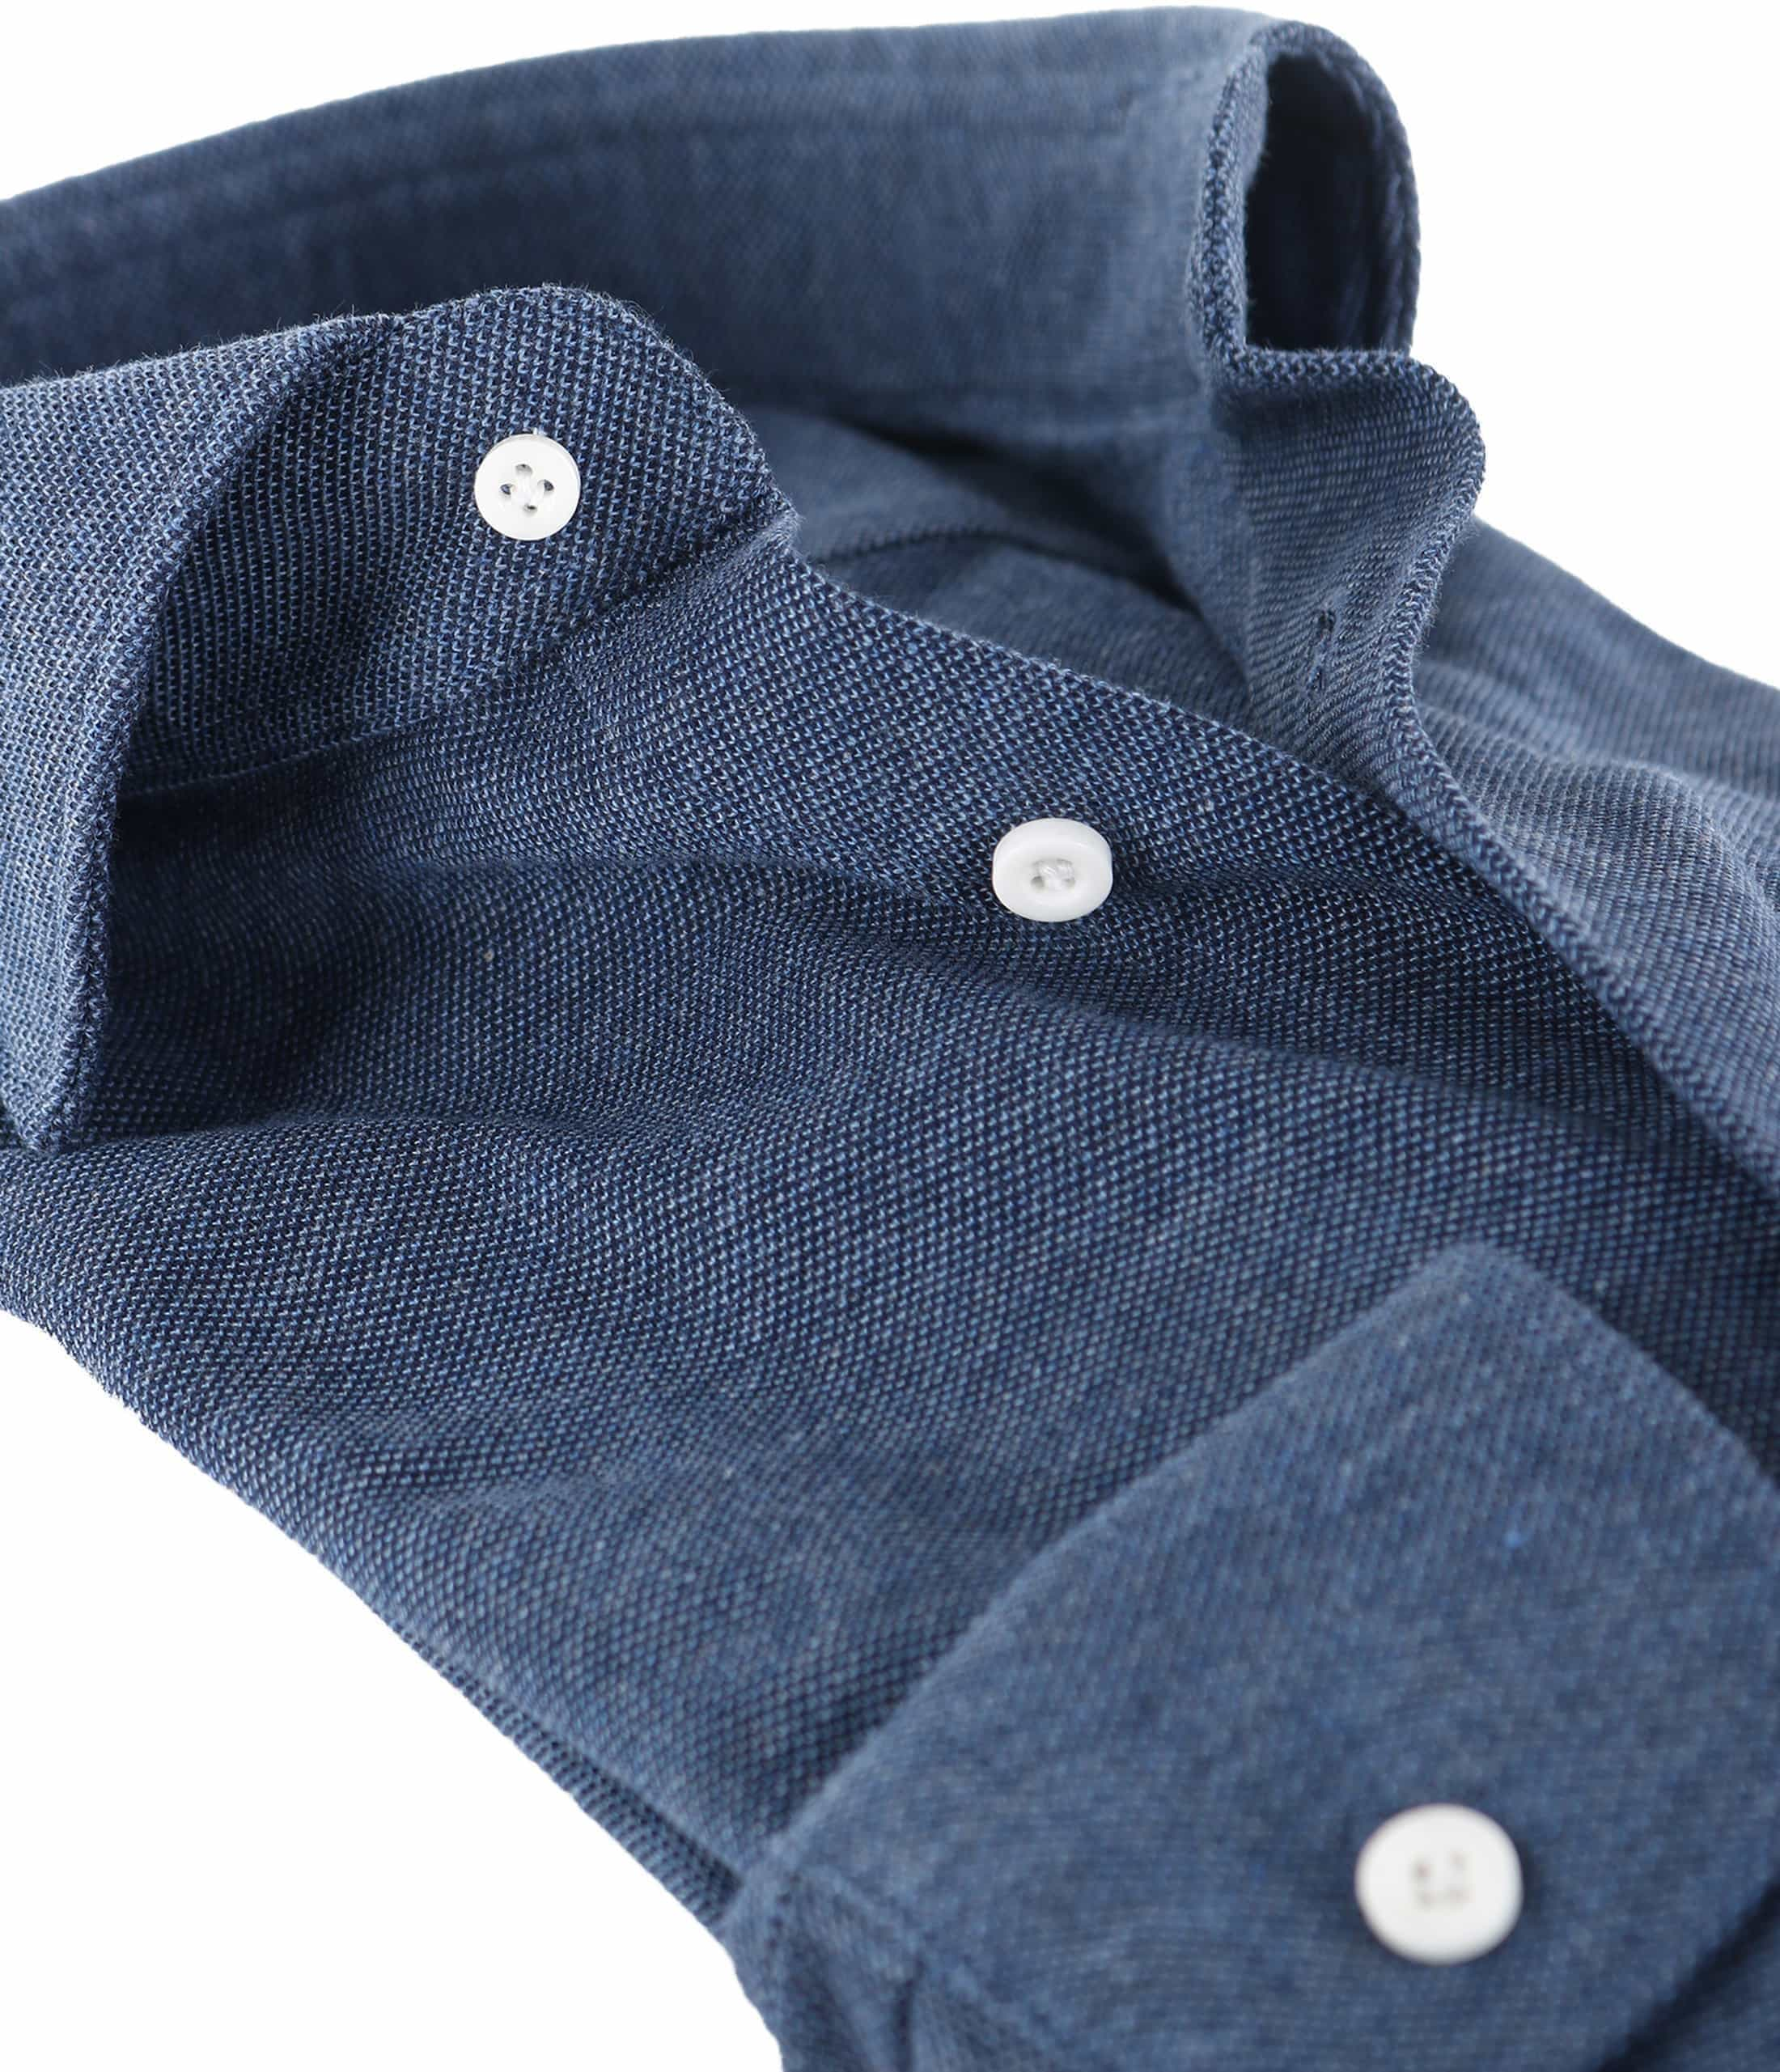 Profuomo Shirt Knitted Slim Fit Indigo Blue foto 1